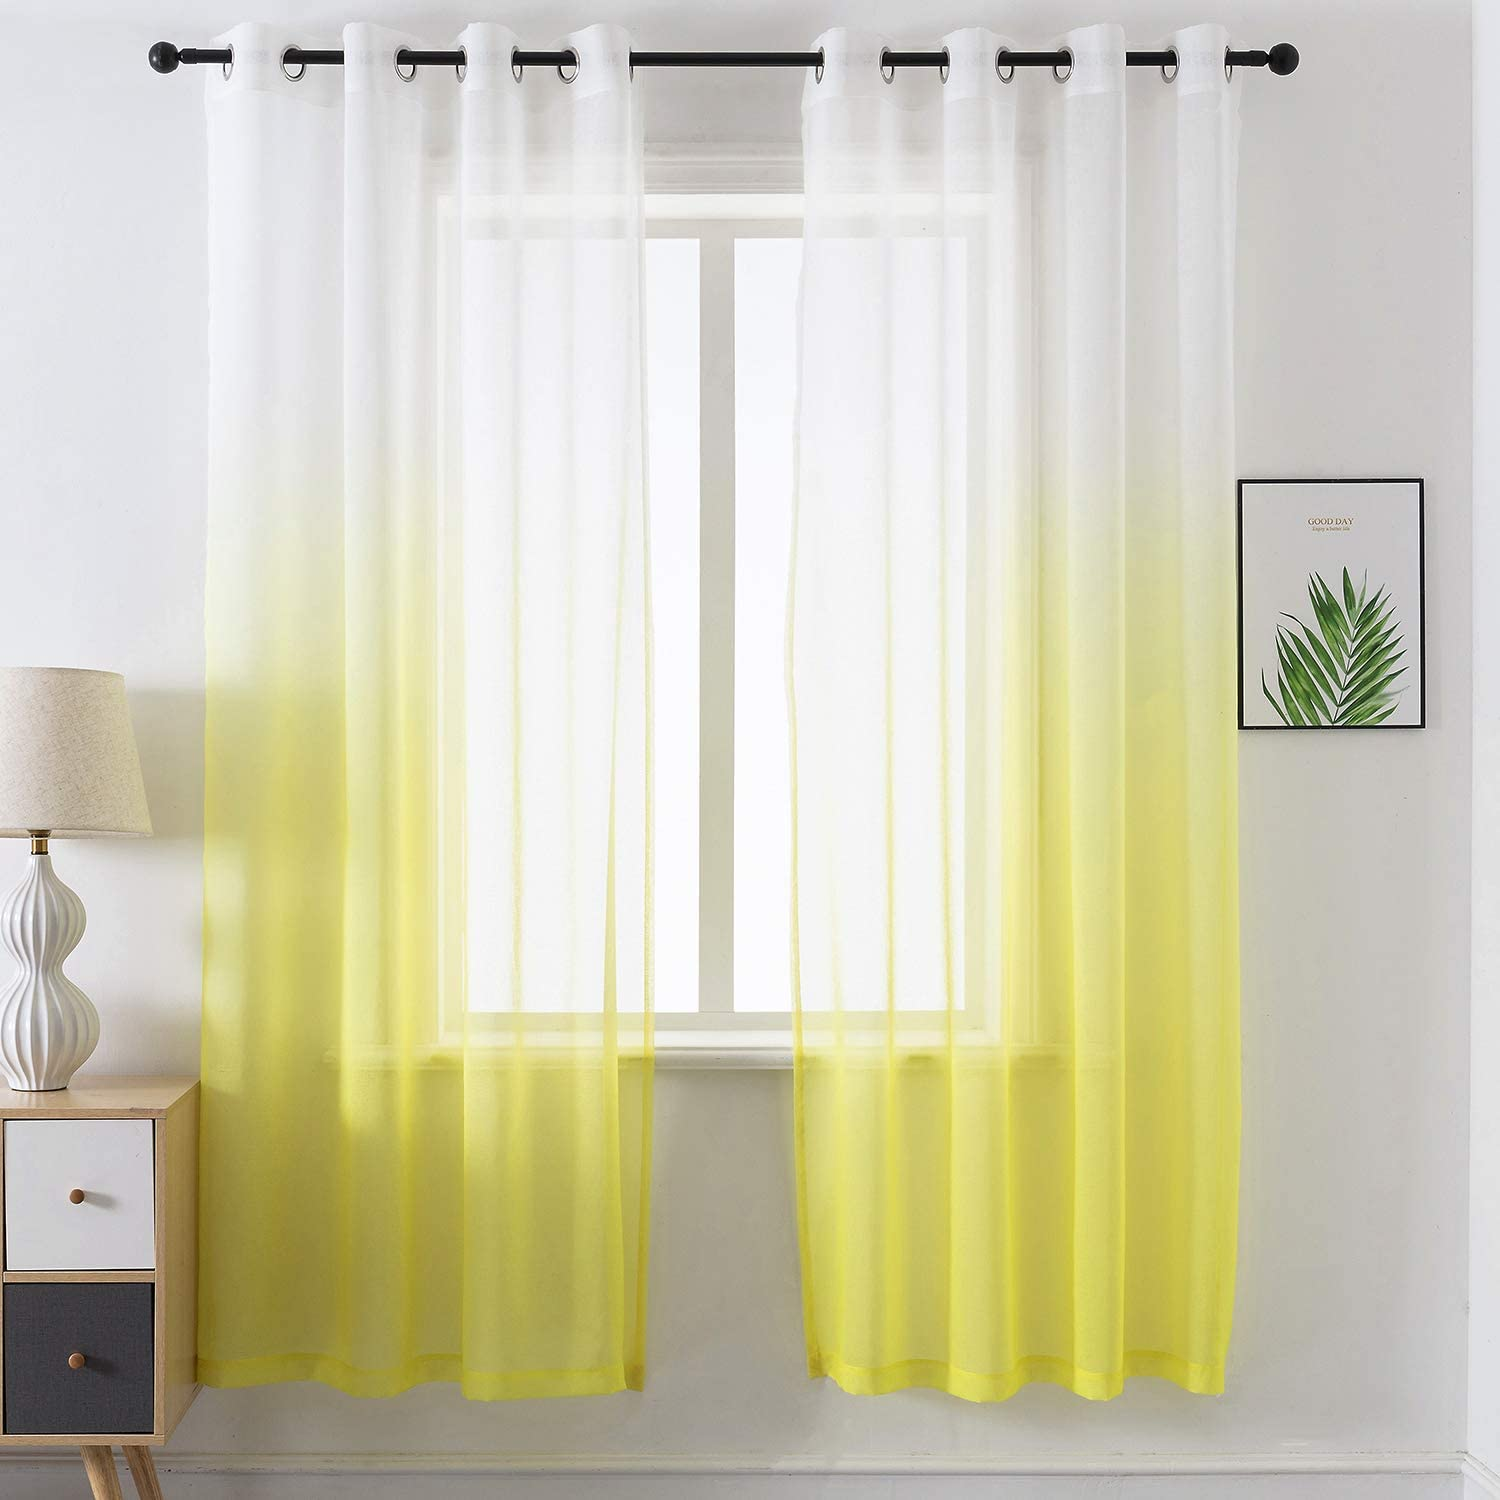 "JUJOLY Yellow Semi Sheer Curtains 84 inches Long for Bedroom Ombre Print Grommet Light Filtering Window Curtains for Living Room Girls Décor, Set of 2, White to Yellow Gradient, 52"" x 84"""